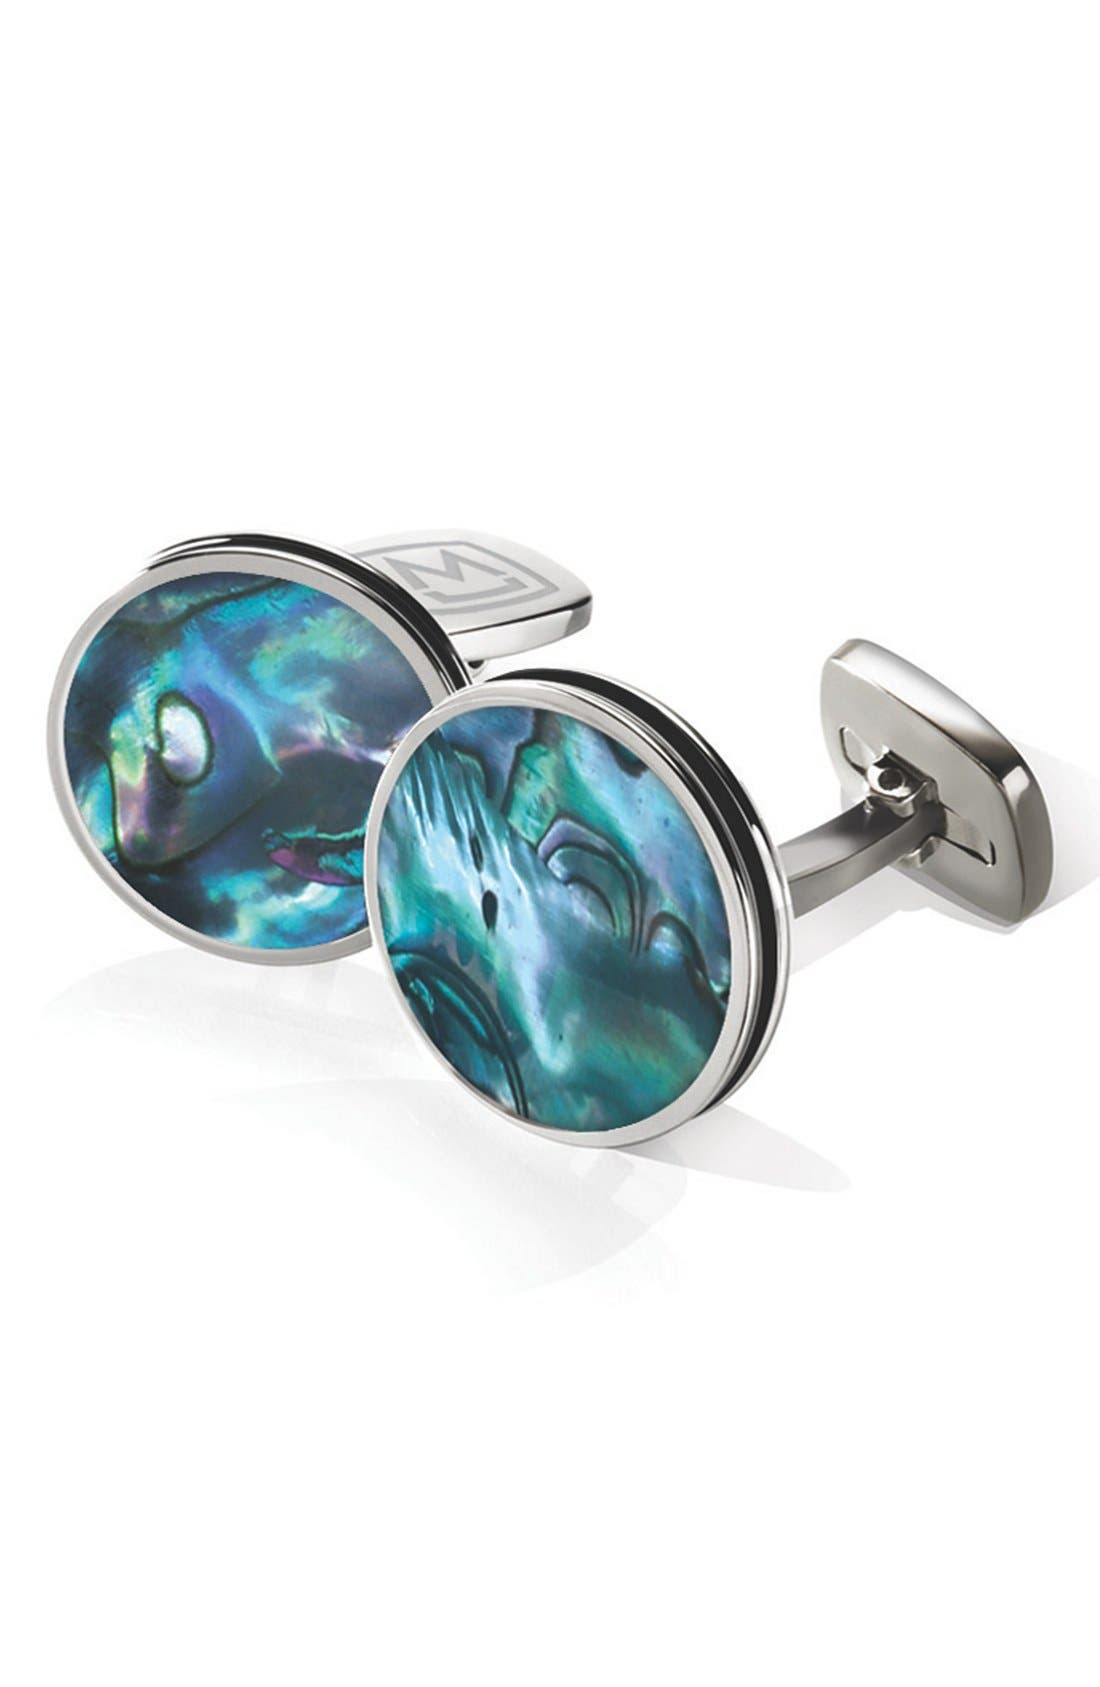 Abalone Cuff Links,                             Main thumbnail 1, color,                             Stainless Steel/ Green